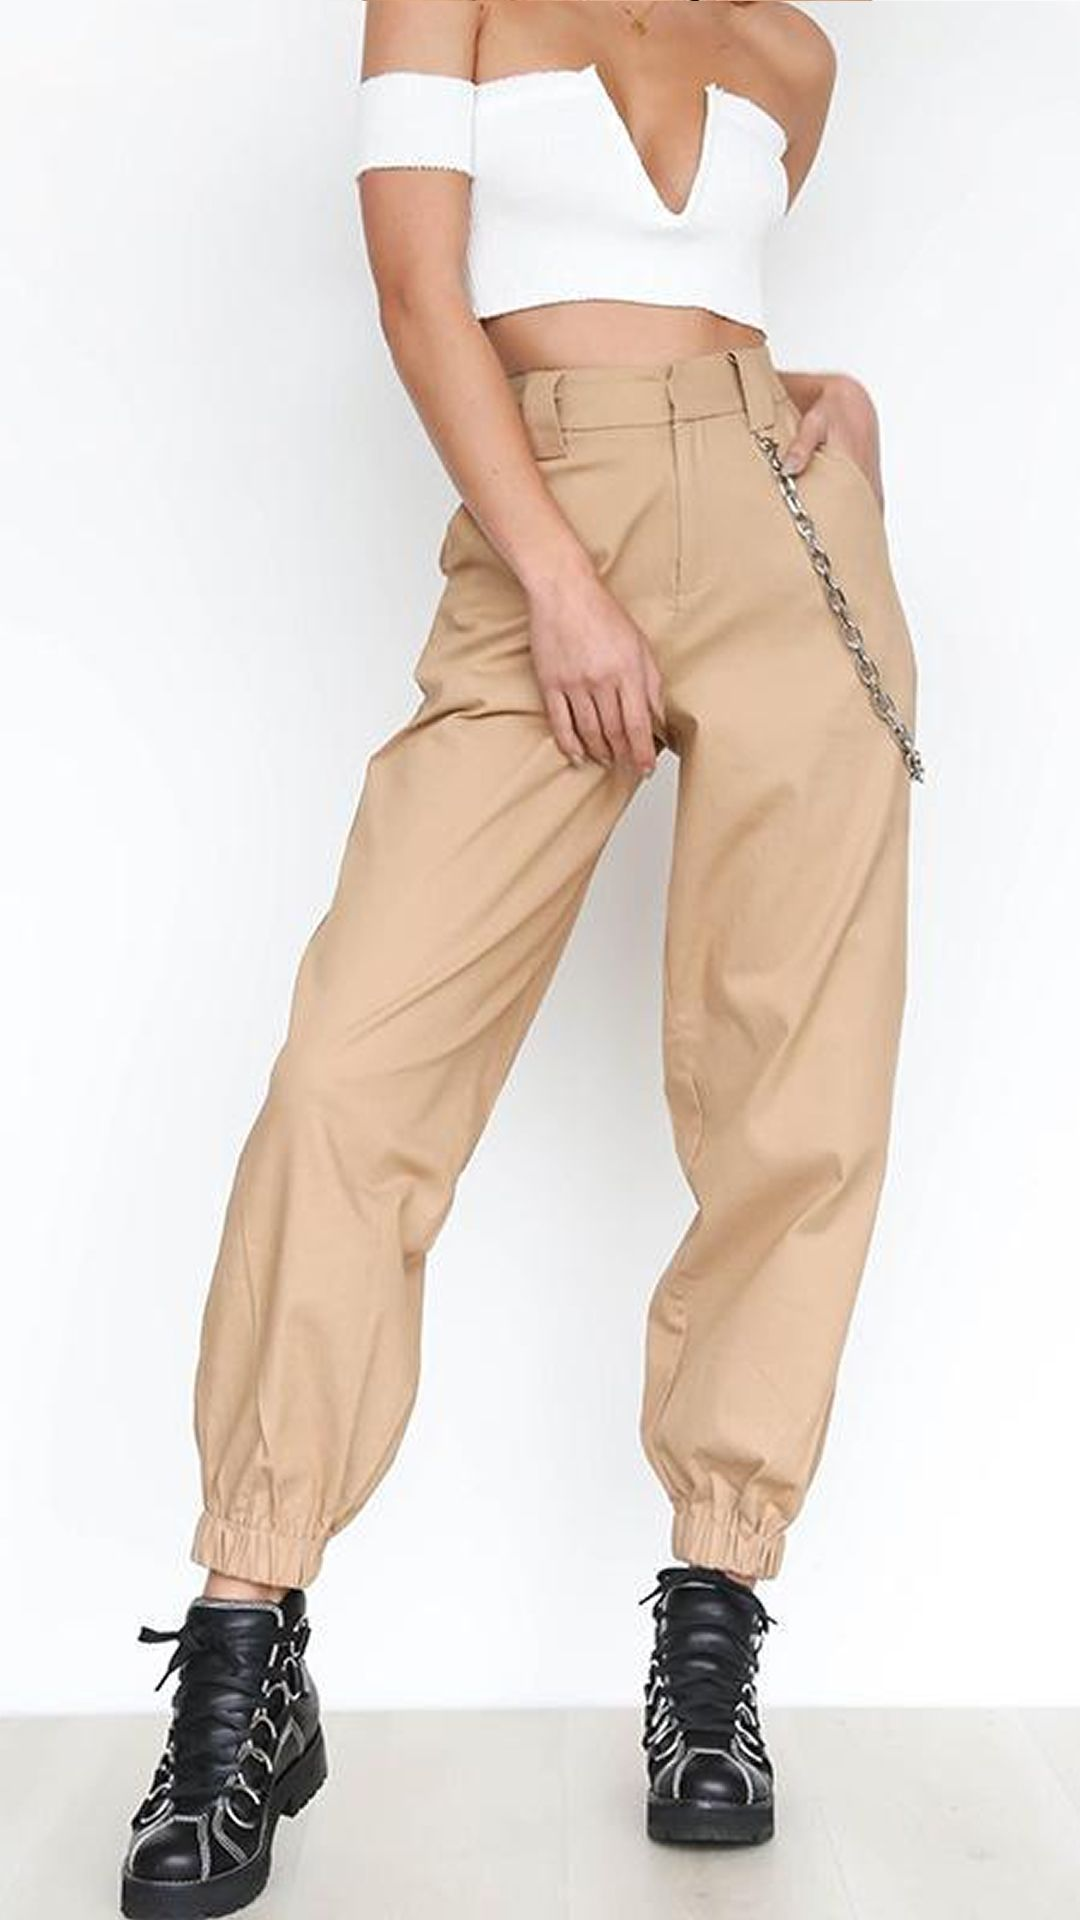 cheaper f48ce 54ad1 High Waisted Harem Pants - With Chain. 60% off until we run out of stock.  Click now to claim yours 3